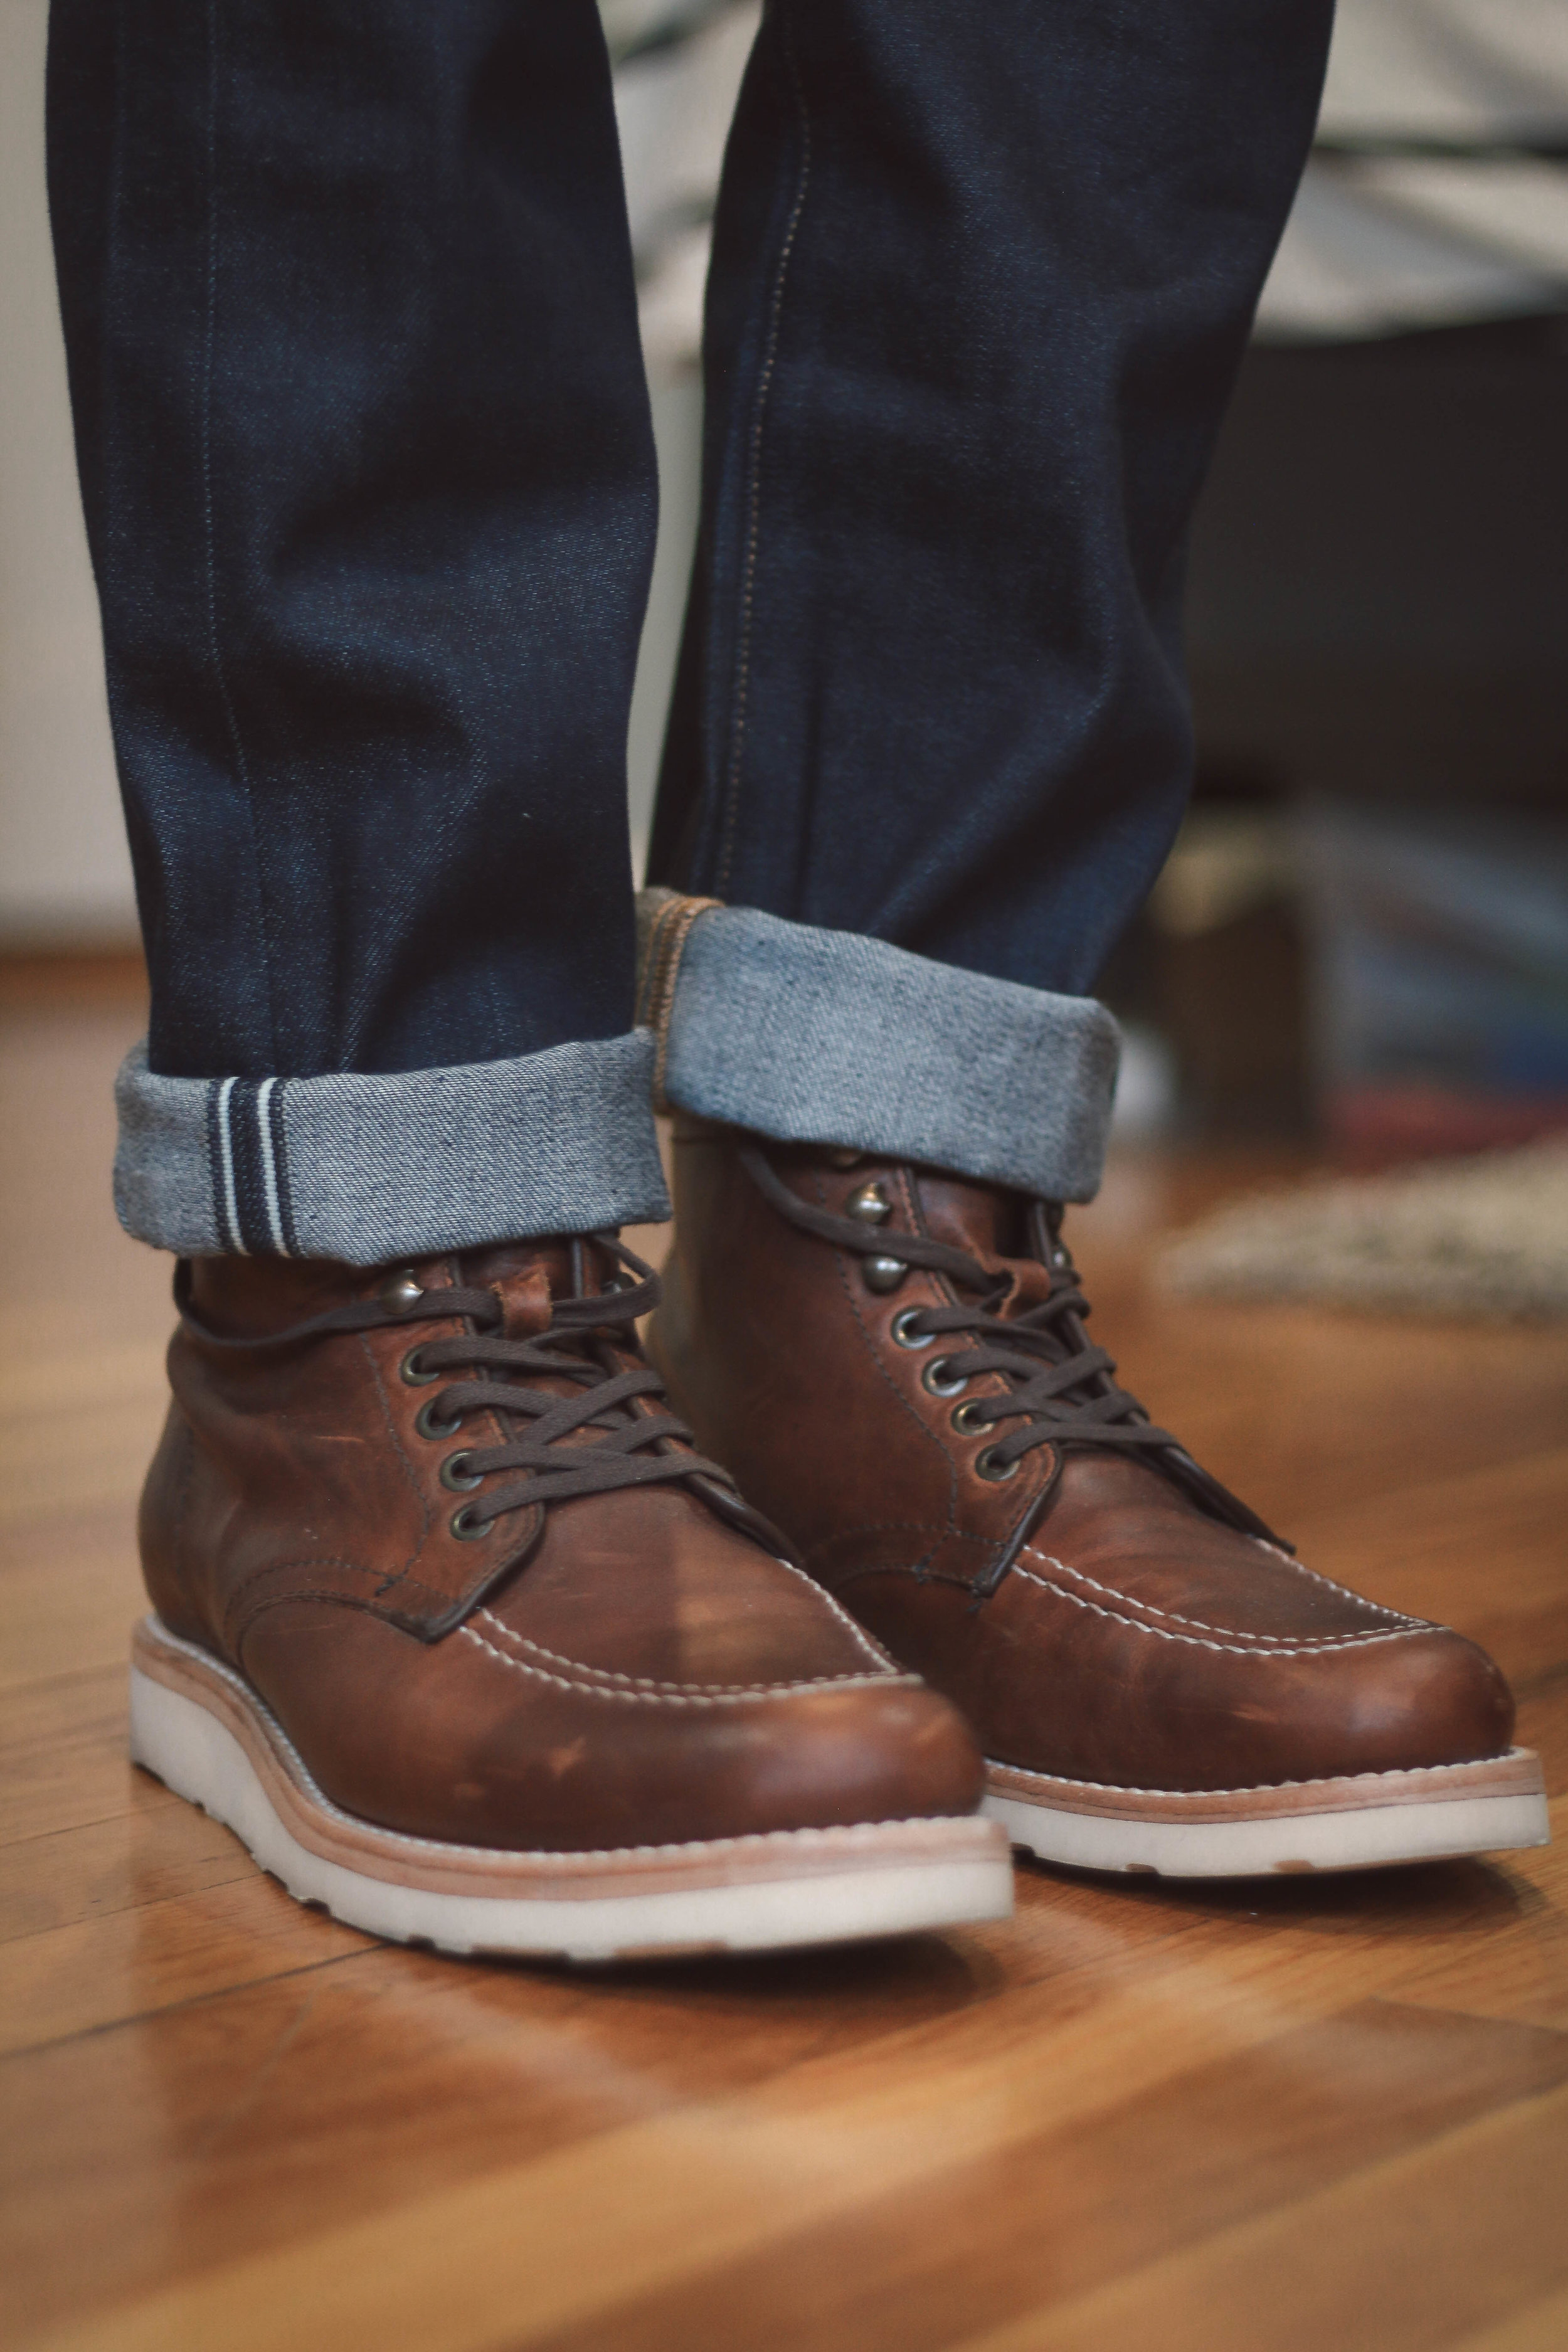 Japanese Selvedge jeans from Levis Made & Crafted i bought from the outlet for $90